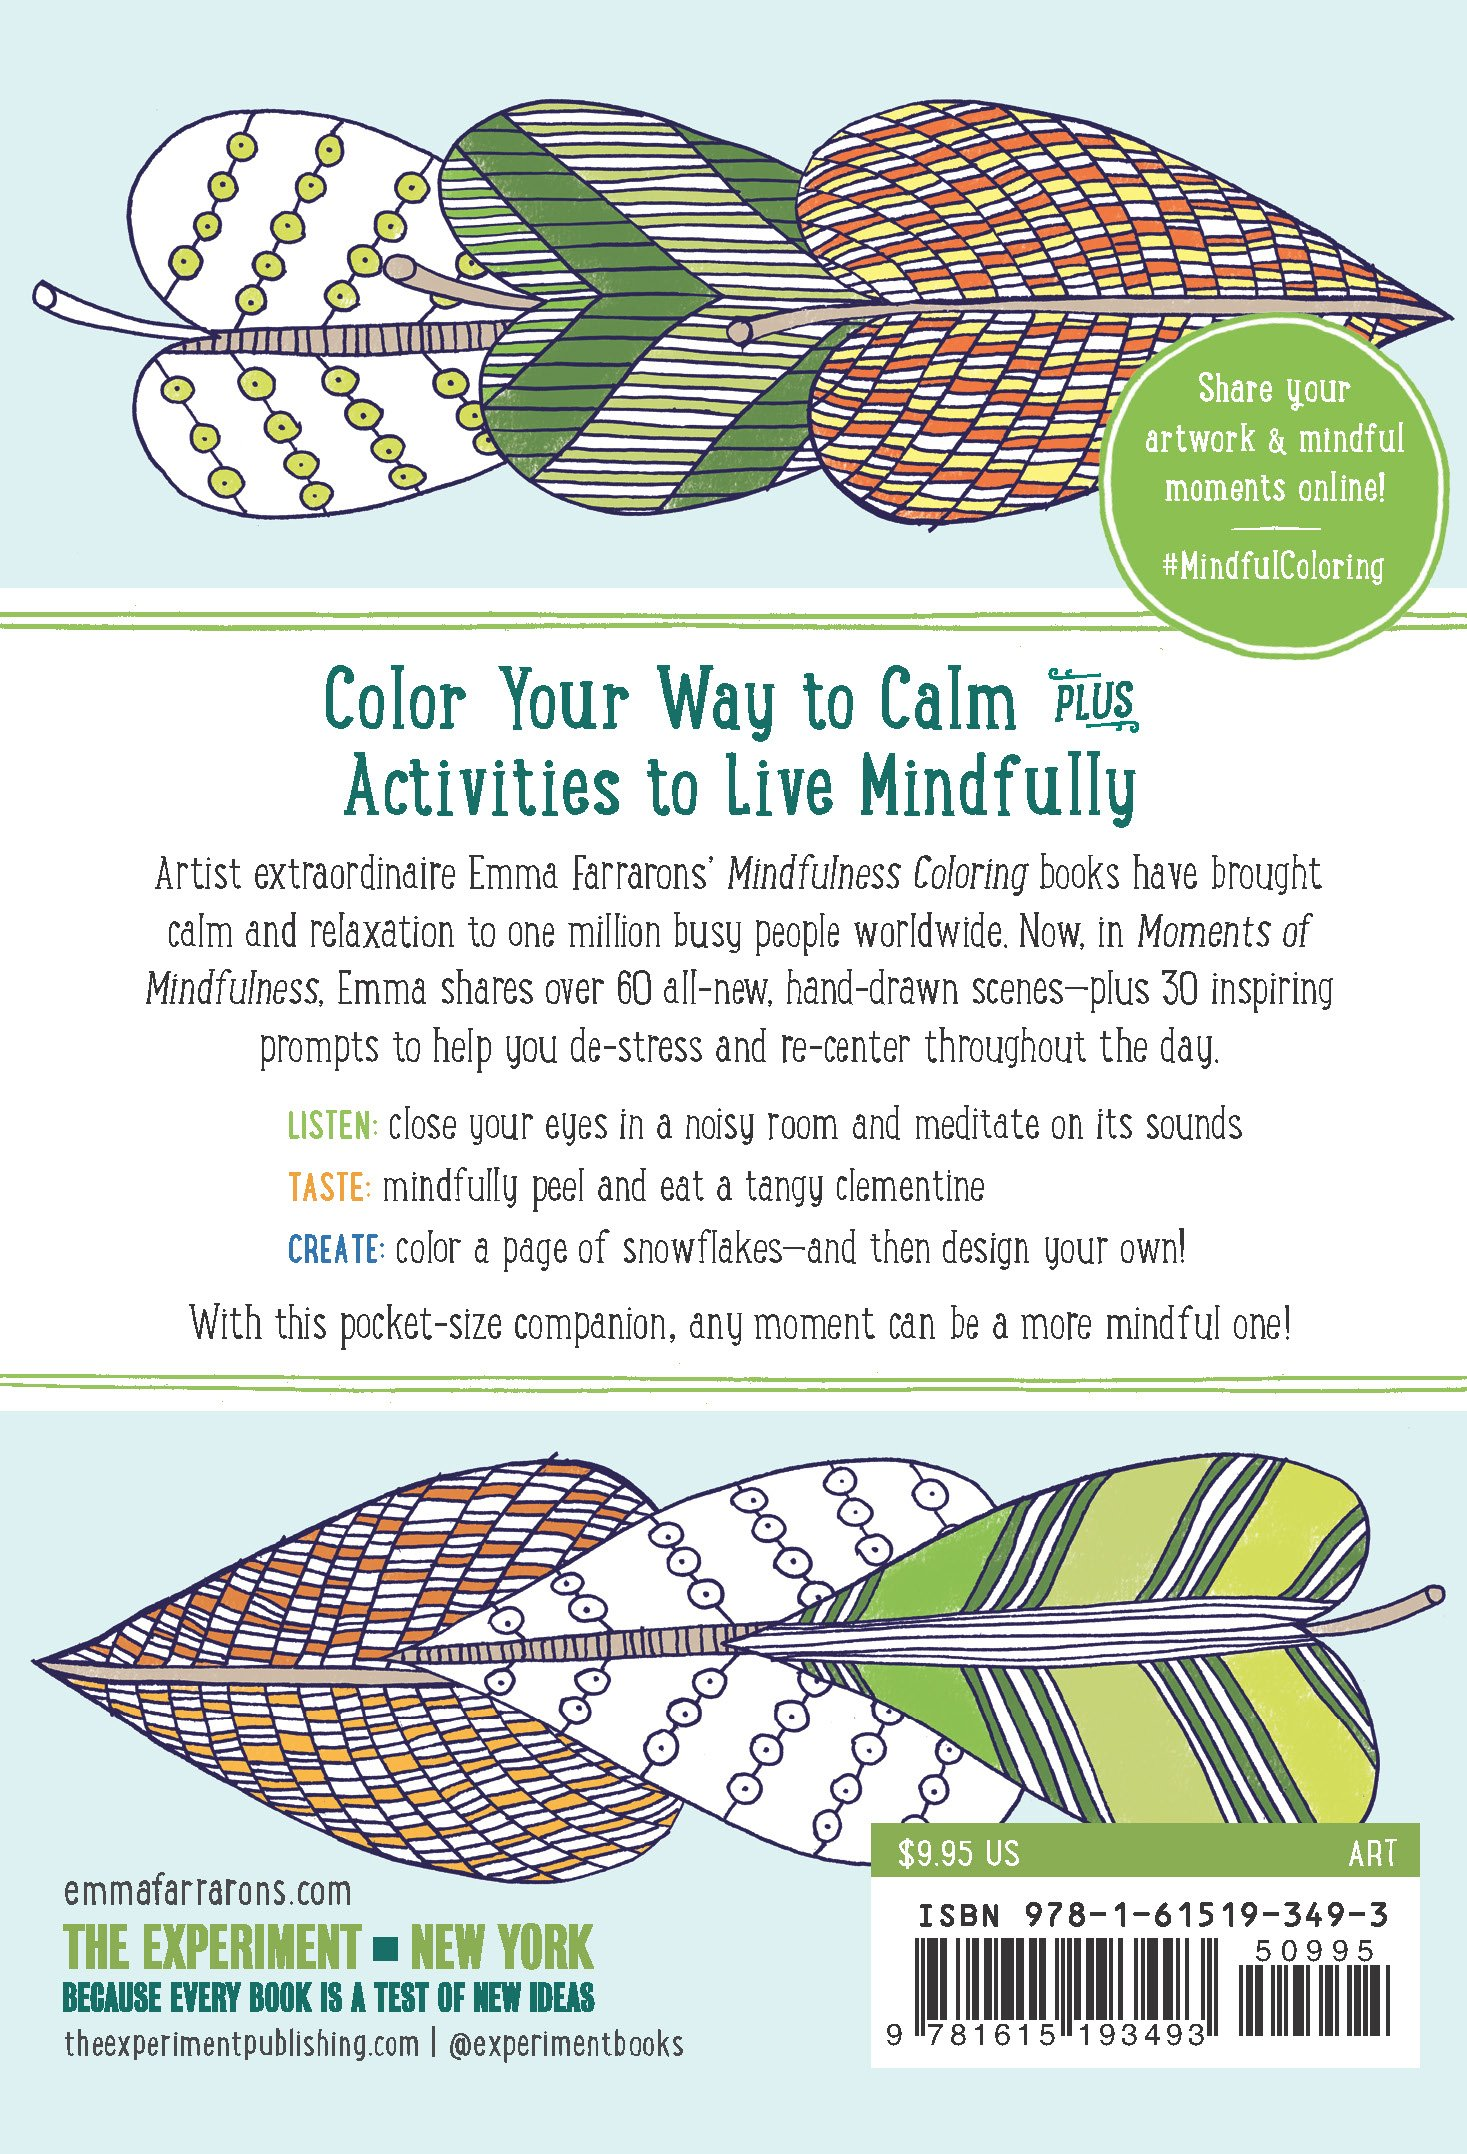 Mindfulness coloring book - Moments Of Mindfulness Anti Stress Coloring Activities For Busy People The Mindfulness Coloring Series Emma Farrarons 9781615193493 Amazon Com